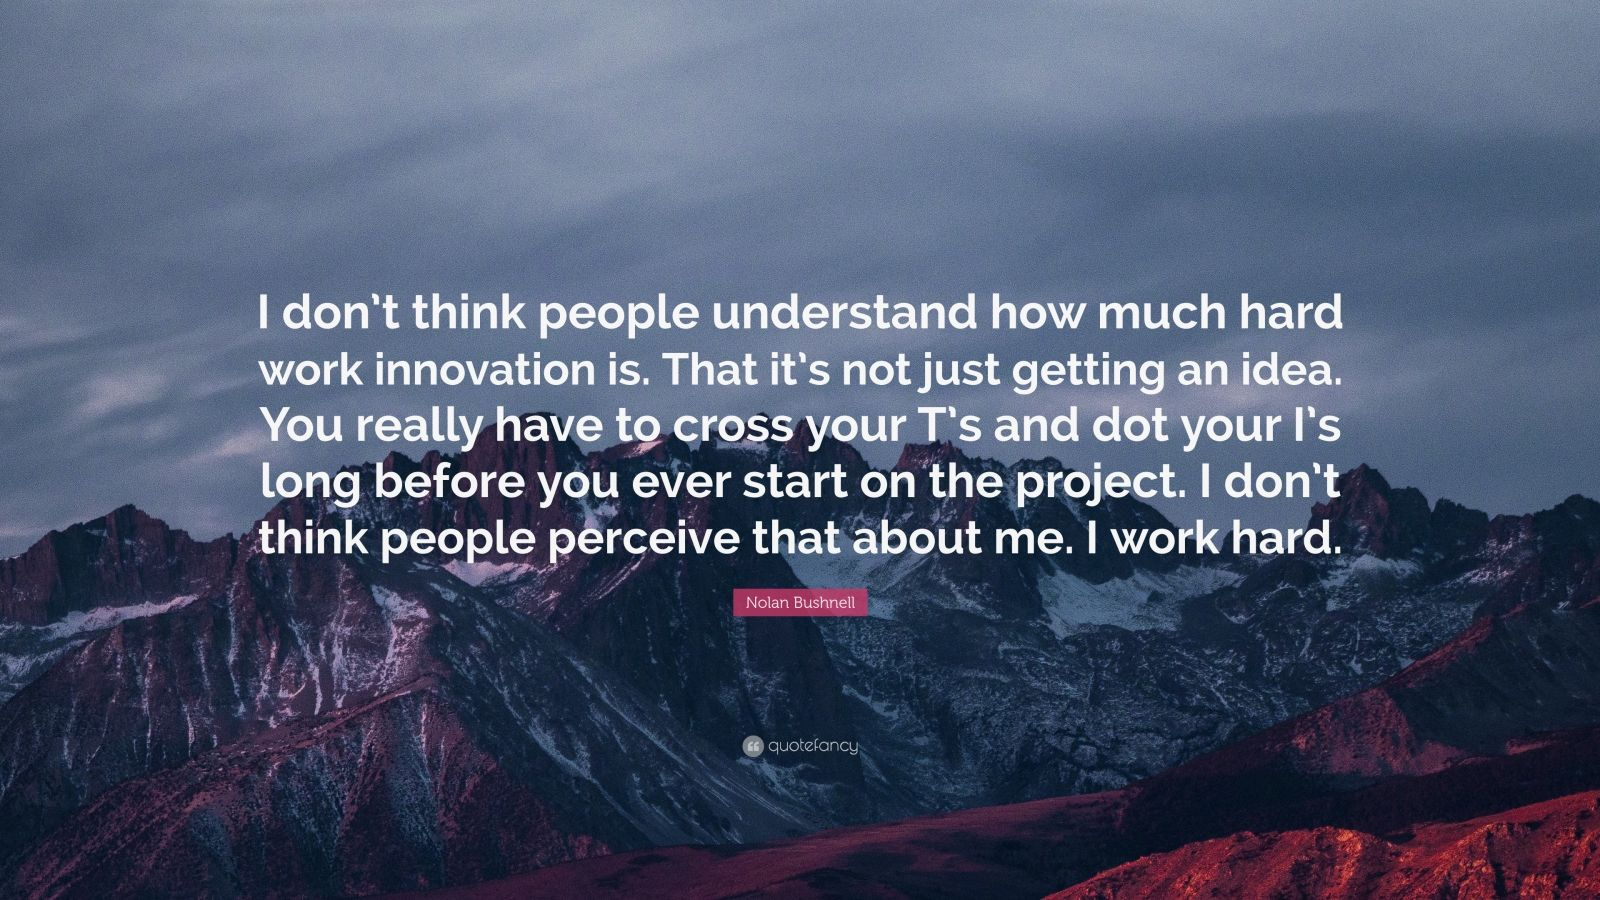 """Nolan Bushnell Quote: """"I don't think people understand how much hard work innovation is. That it's not just getting an idea. You really have to cross your T's and dot your I's long before you ever start on the project. I don't think people perceive that about me. I work hard."""""""